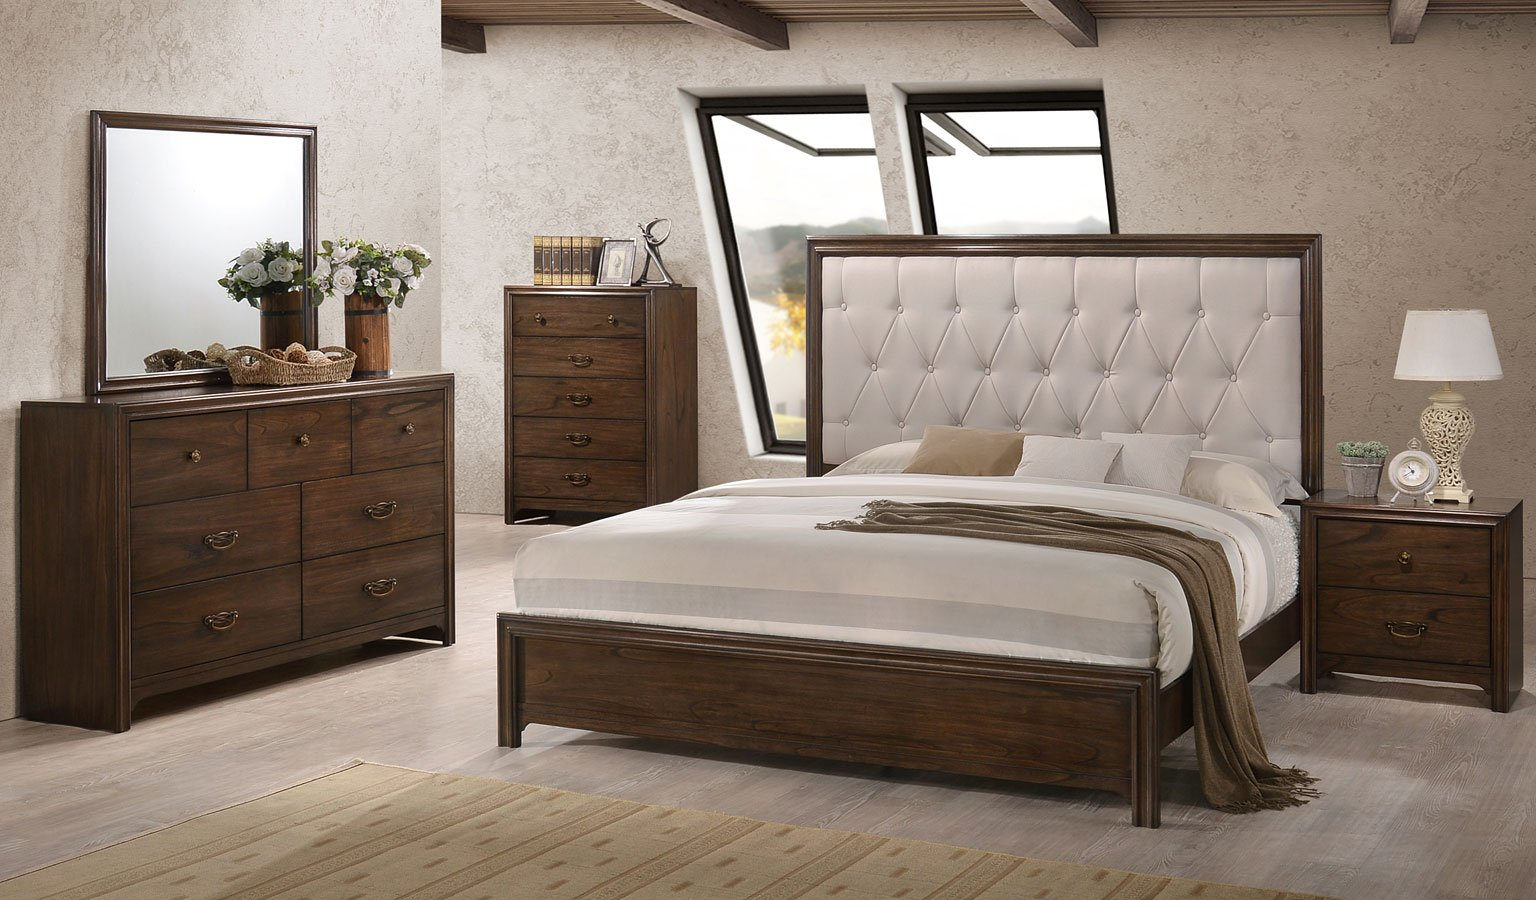 Chloe panel bedroom set bedroom furniture bedroom for Furniture markup